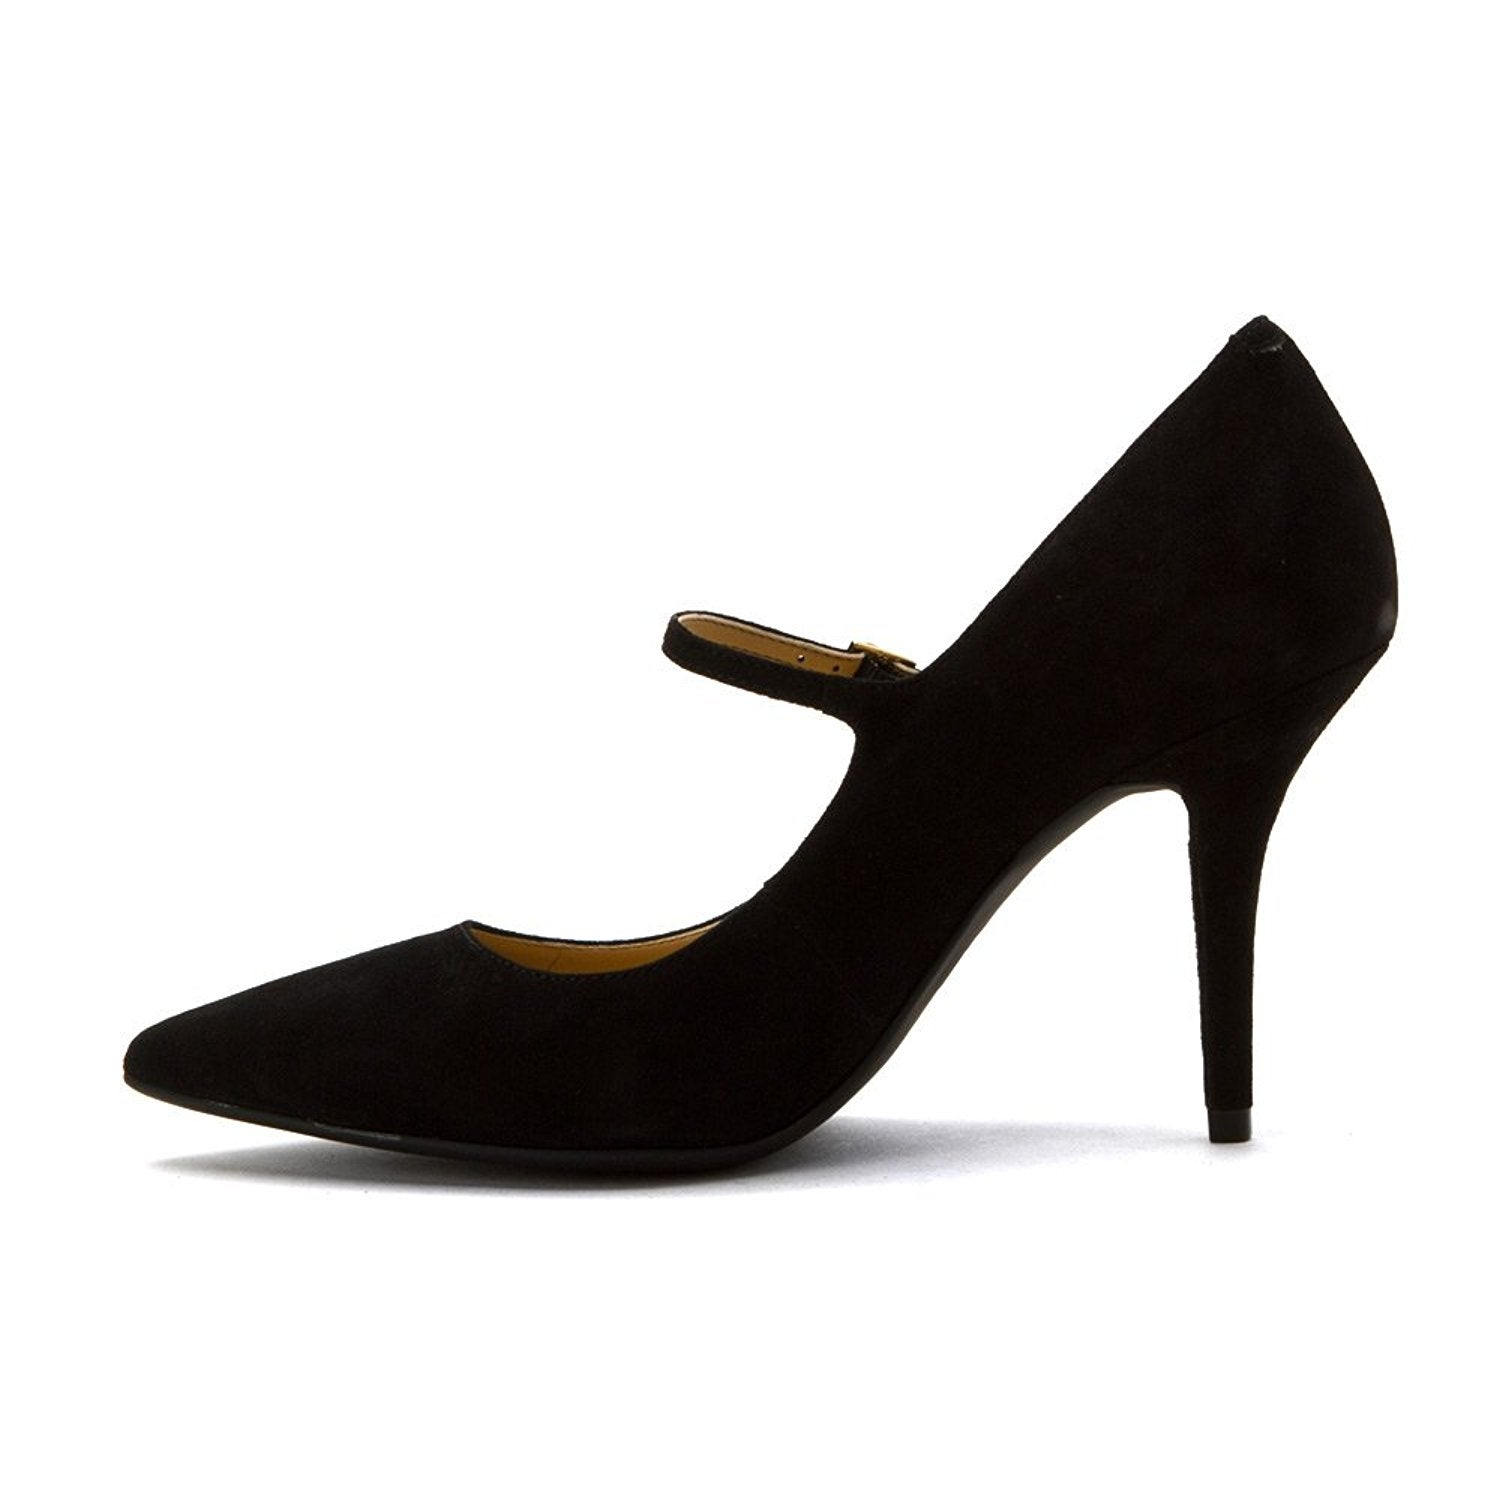 843e61b0f86 Shop MICHAEL Michael Kors Womens Claire Flex Mary Jane Suede Pointed Toe  Ankle Str... - Free Shipping Today - Overstock - 19840679